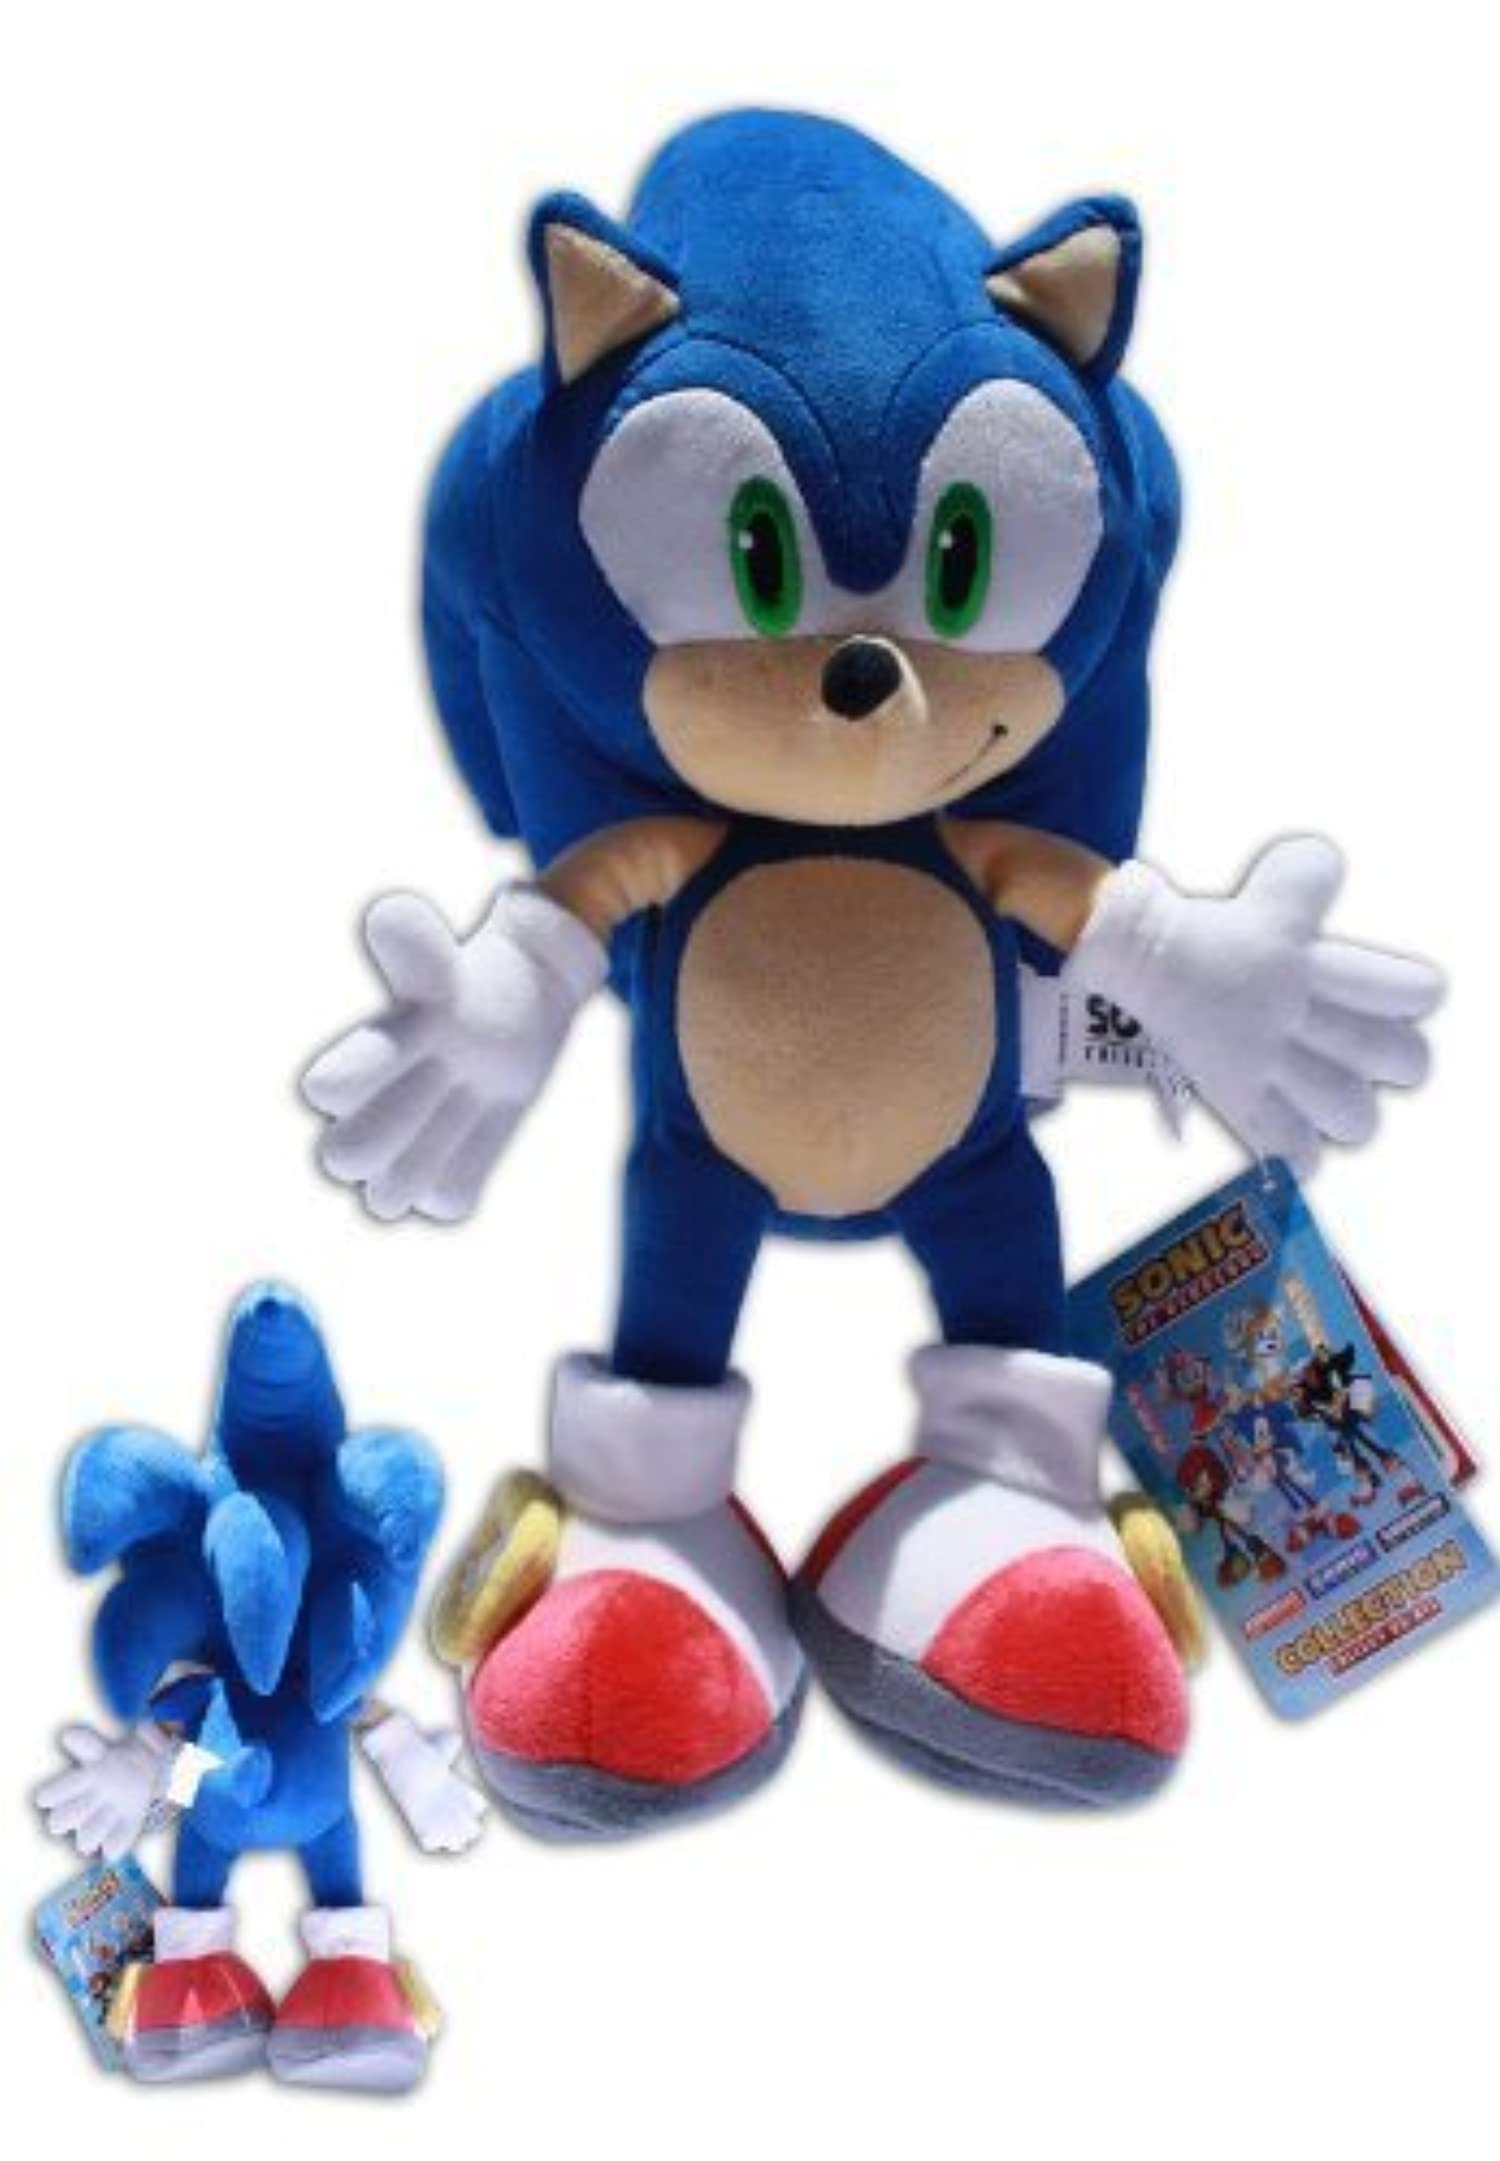 Kids Play With Sonic Exe Toys And Super Sonic Exe Toys: Sonic The Hedgehog 12'' Plush Doll Sonic X Video Game Blue